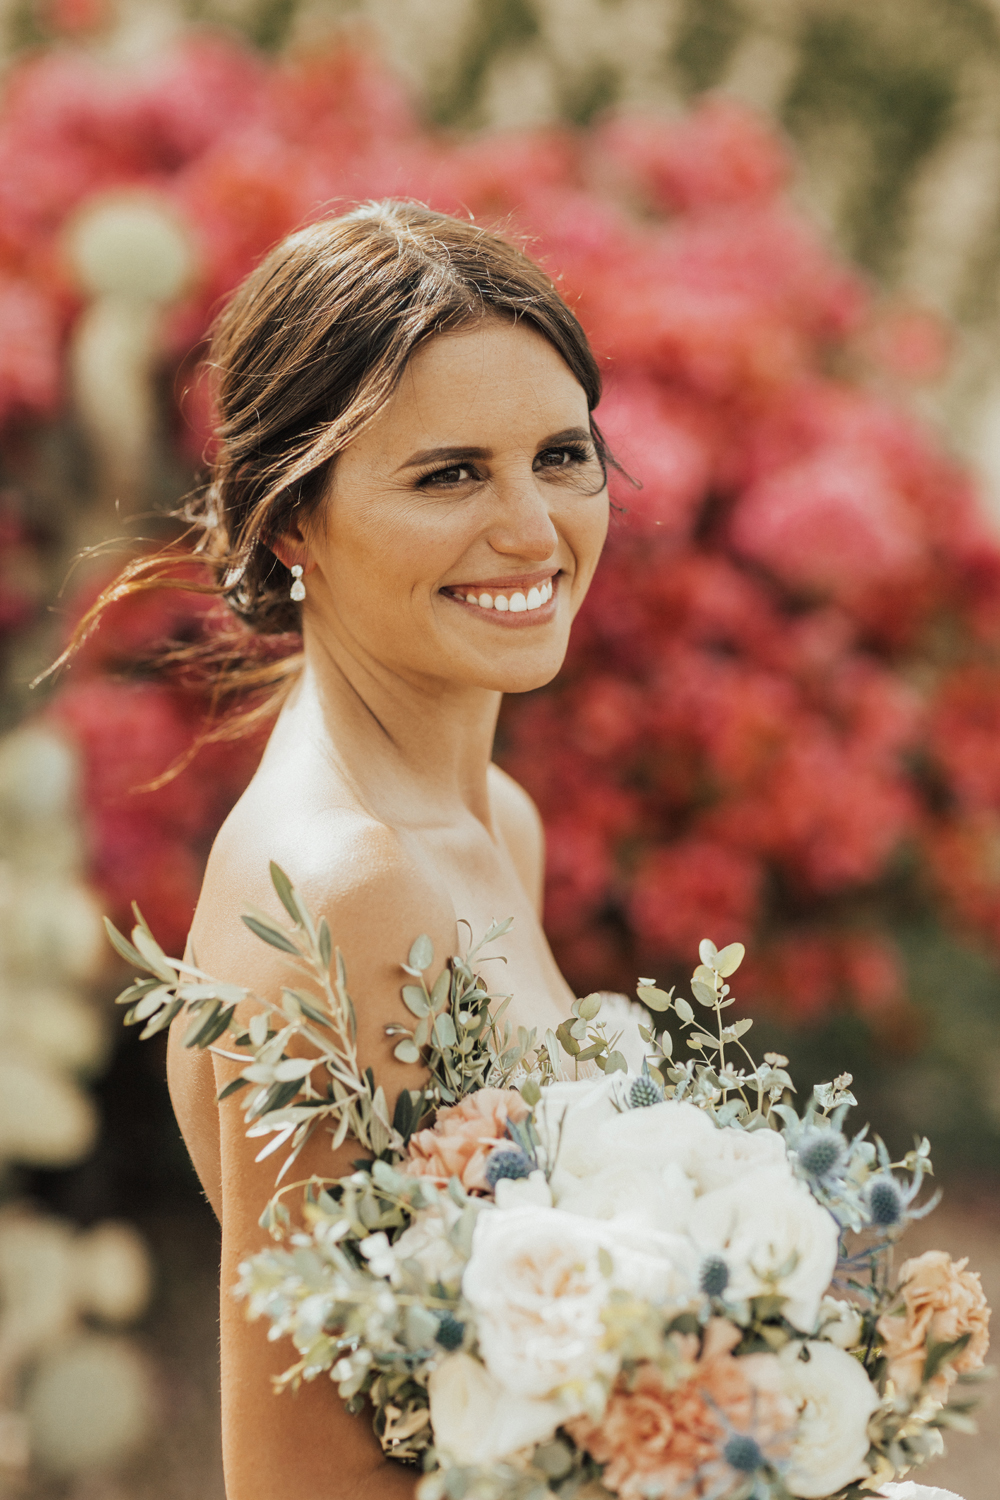 phoenix arizona wedding florist - best florist in phoenix, arizona